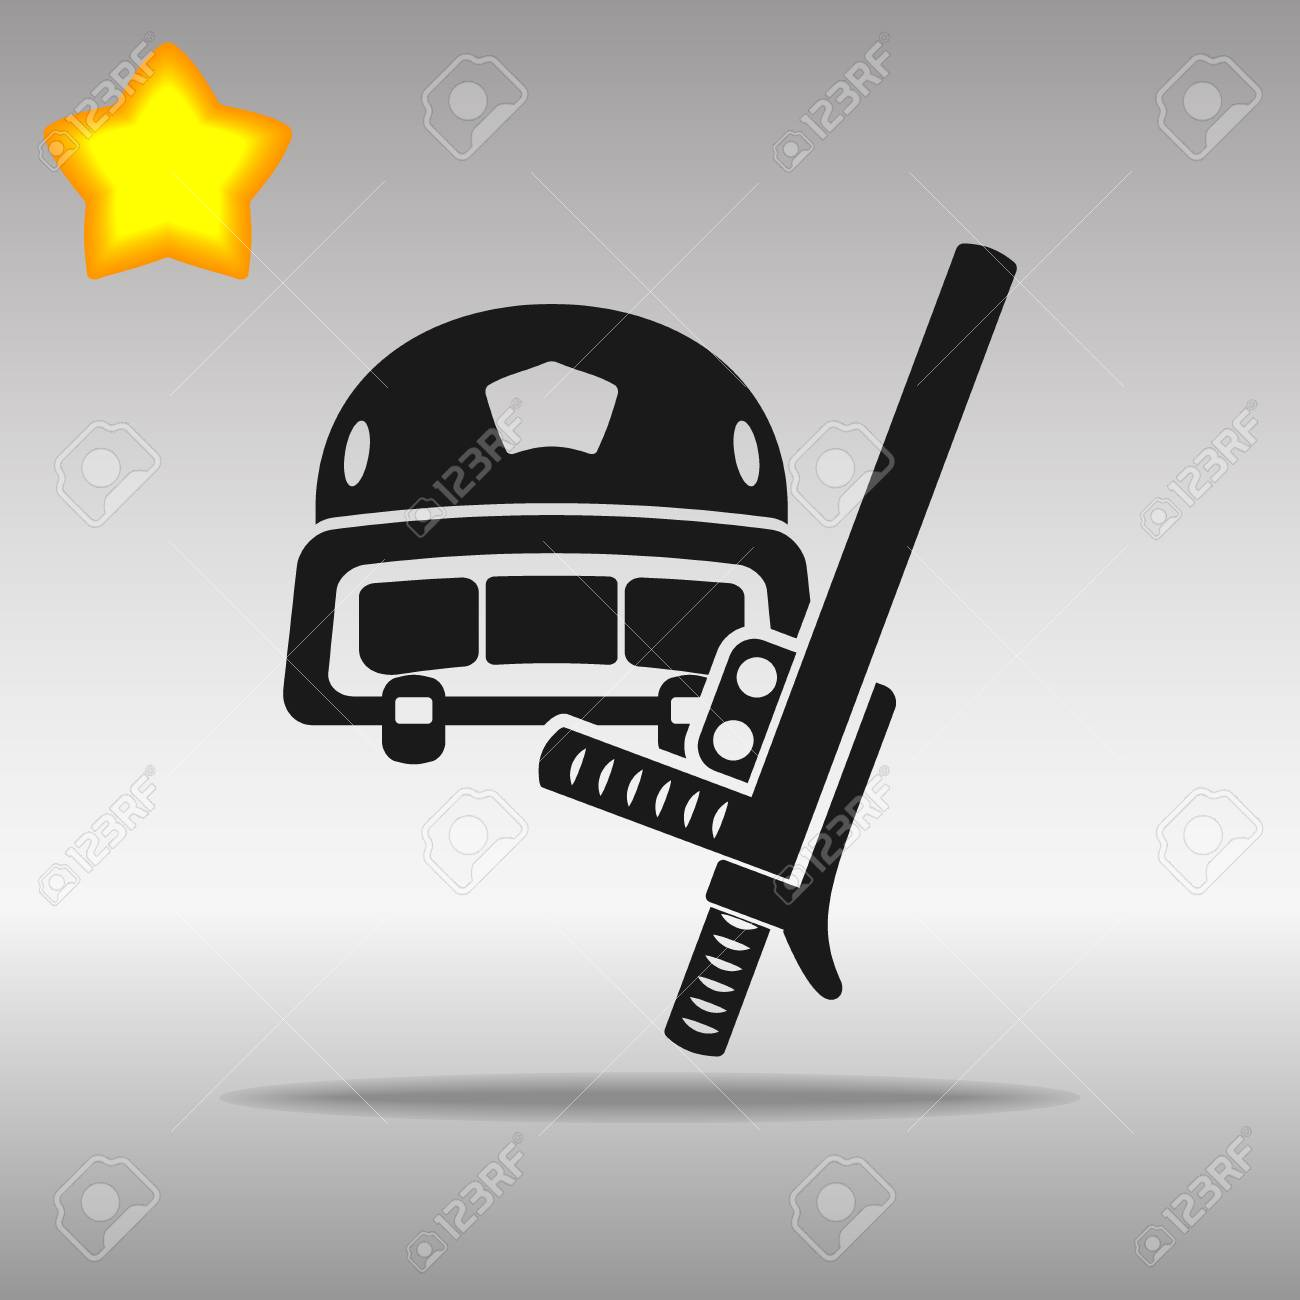 Police helmet and stick black Icon button logo symbol concept high quality on the gray background - 79142252